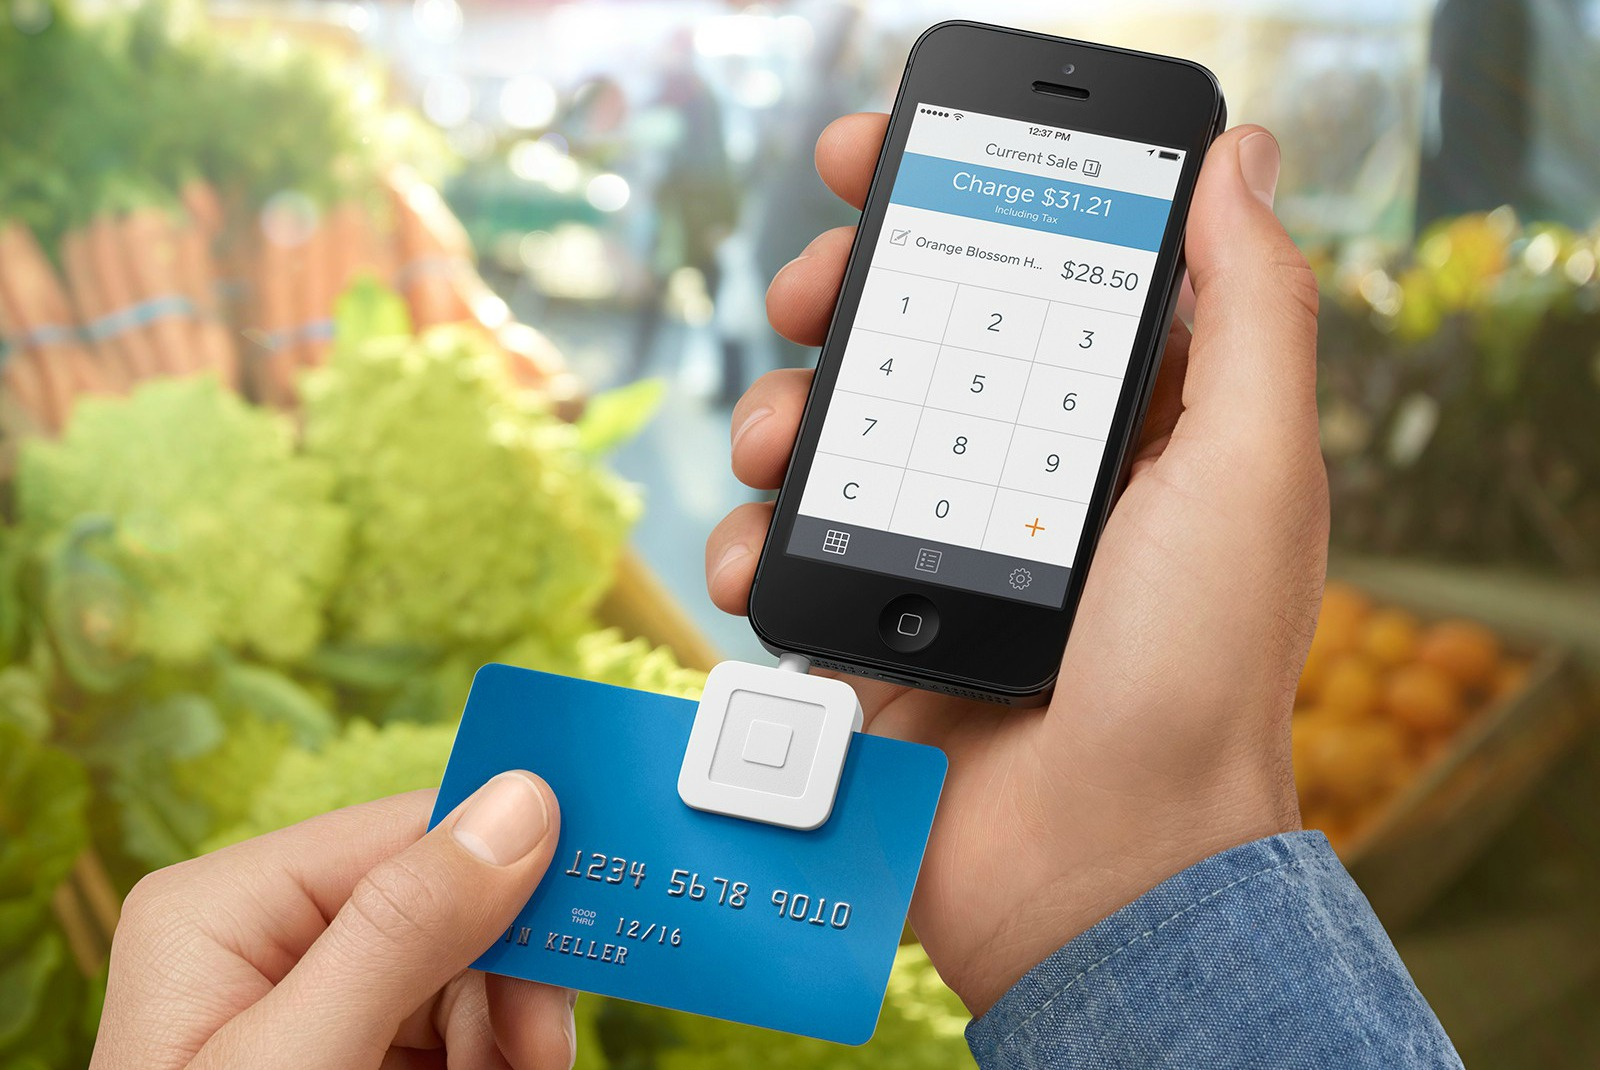 iPhone Credit Card Processing: What You Need to Know